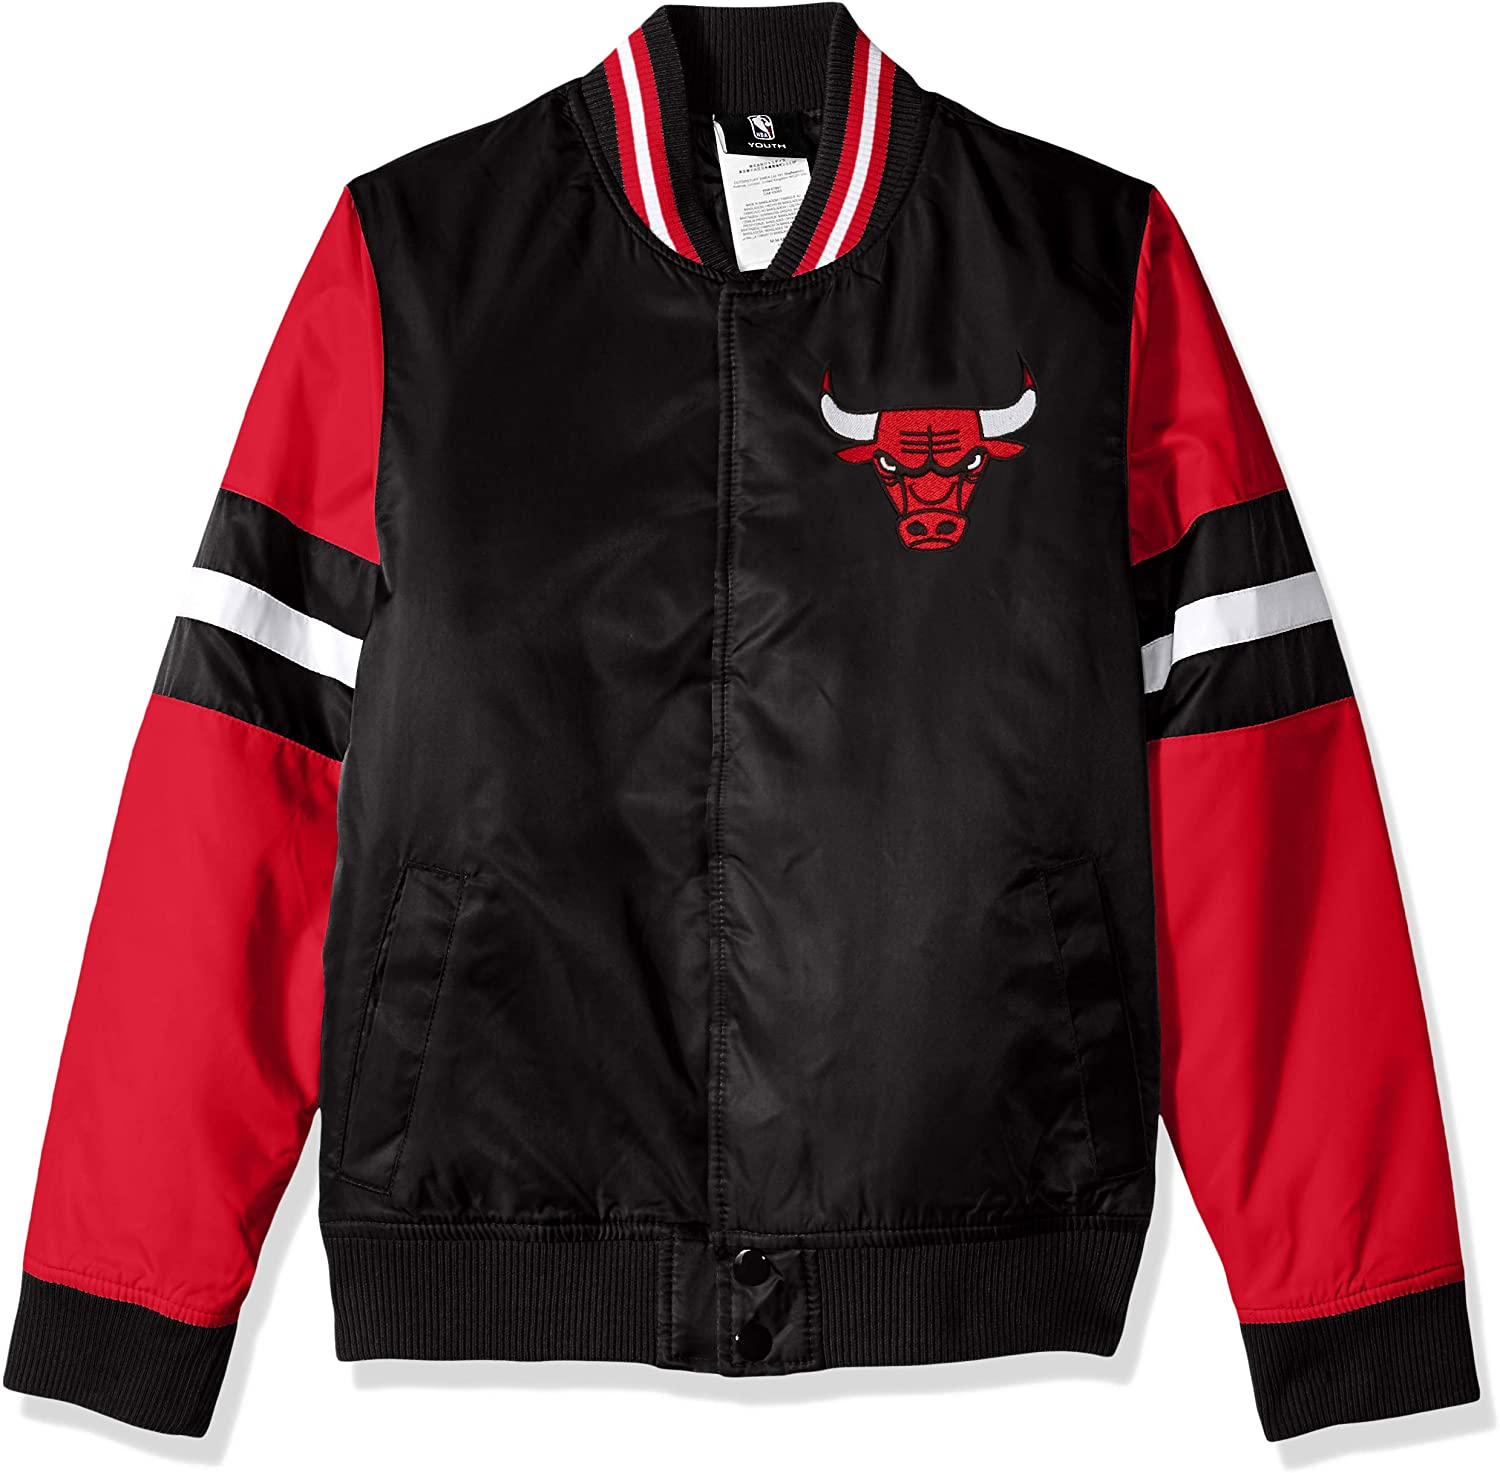 NBA by Outerstuff NBA Youth Boys Chicago Bulls